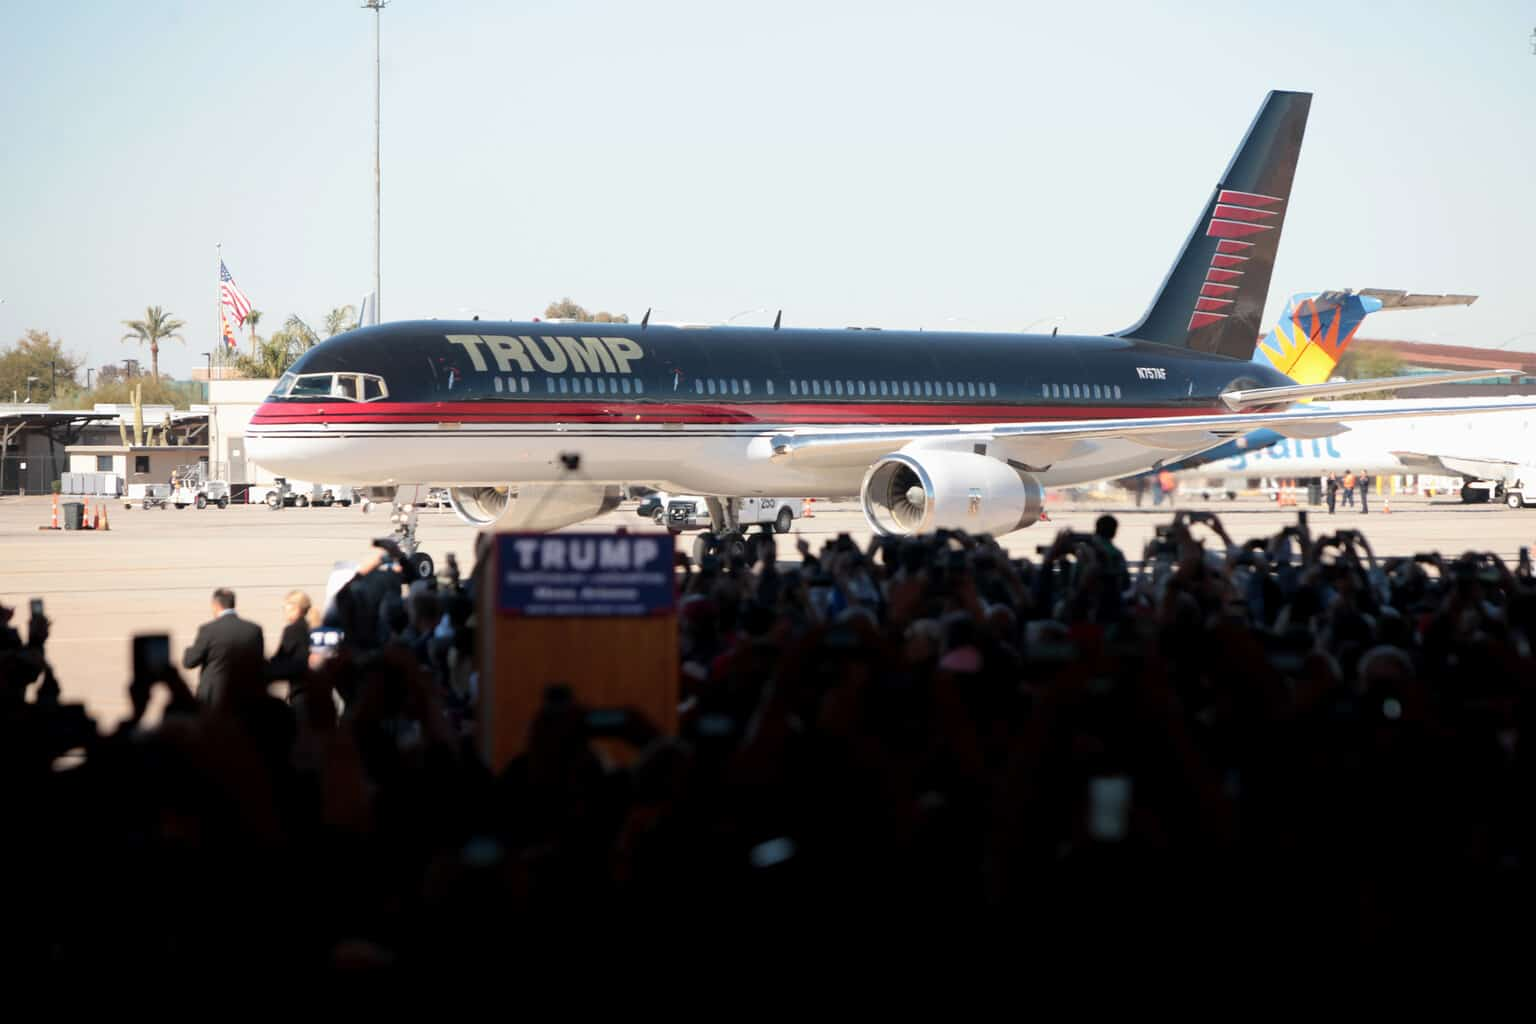 Boeing 757: Avion privado de Donald Trump